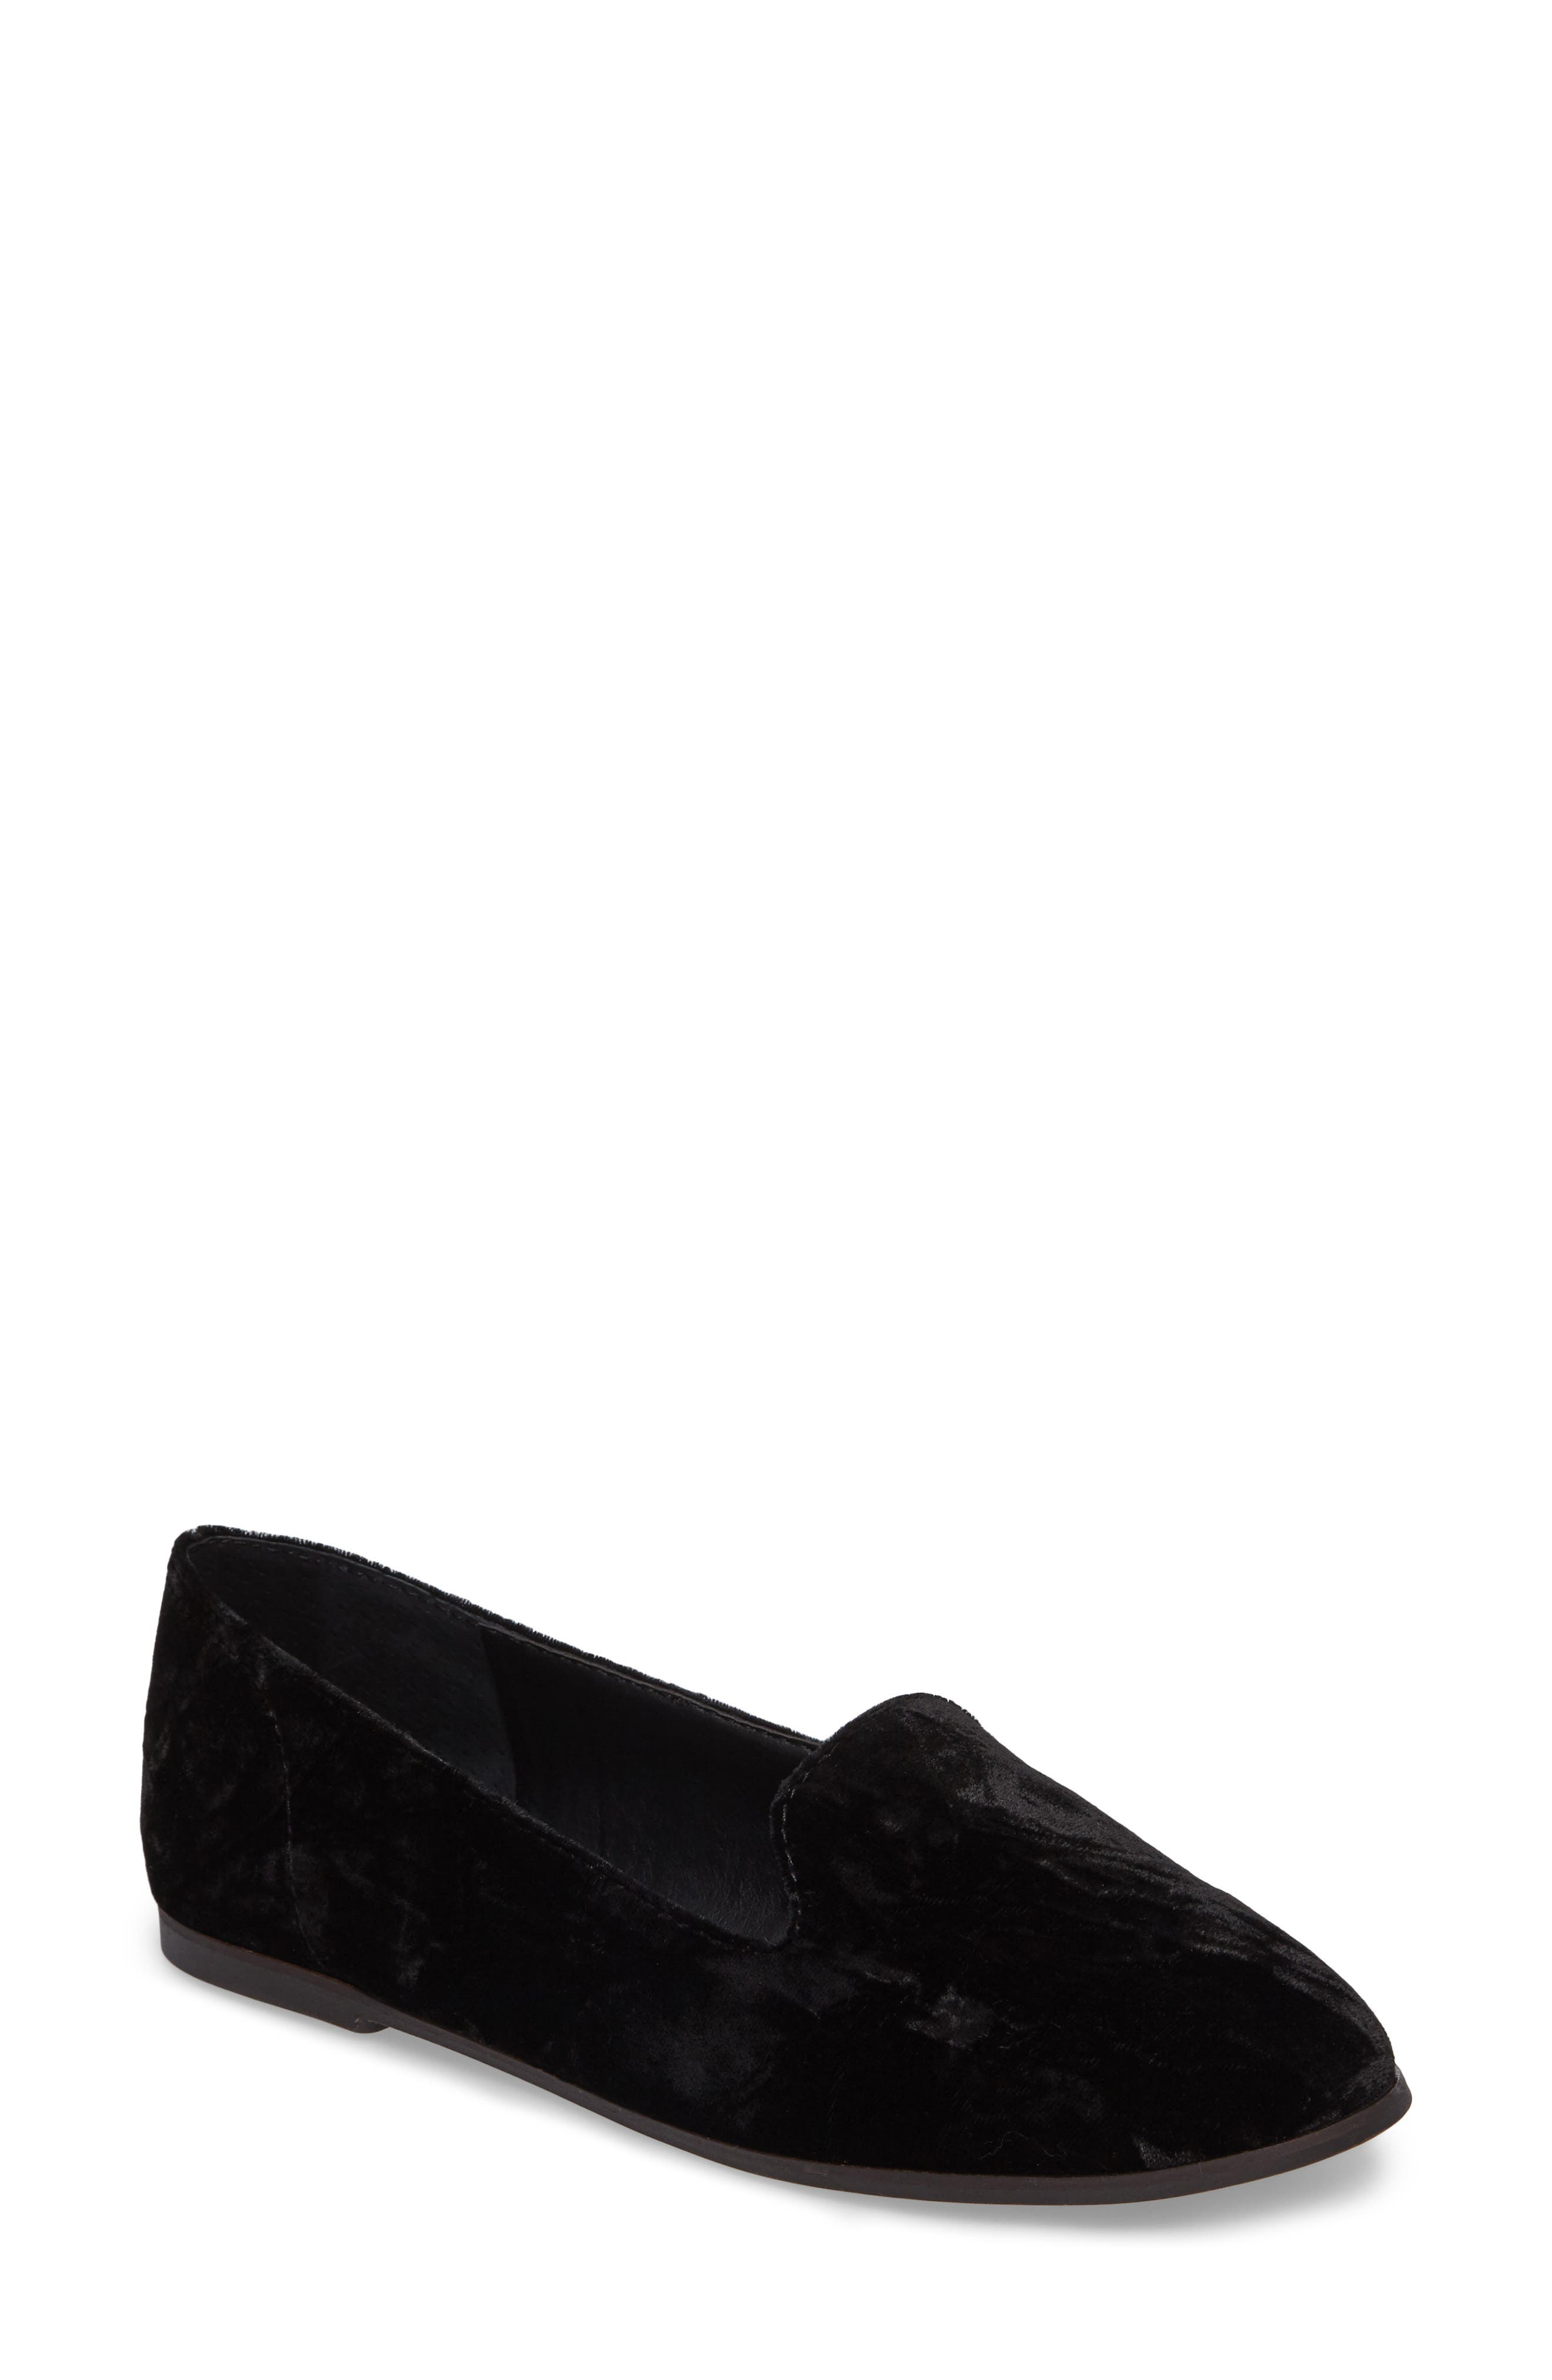 Carlyn Loafer Flat,                         Main,                         color, 001